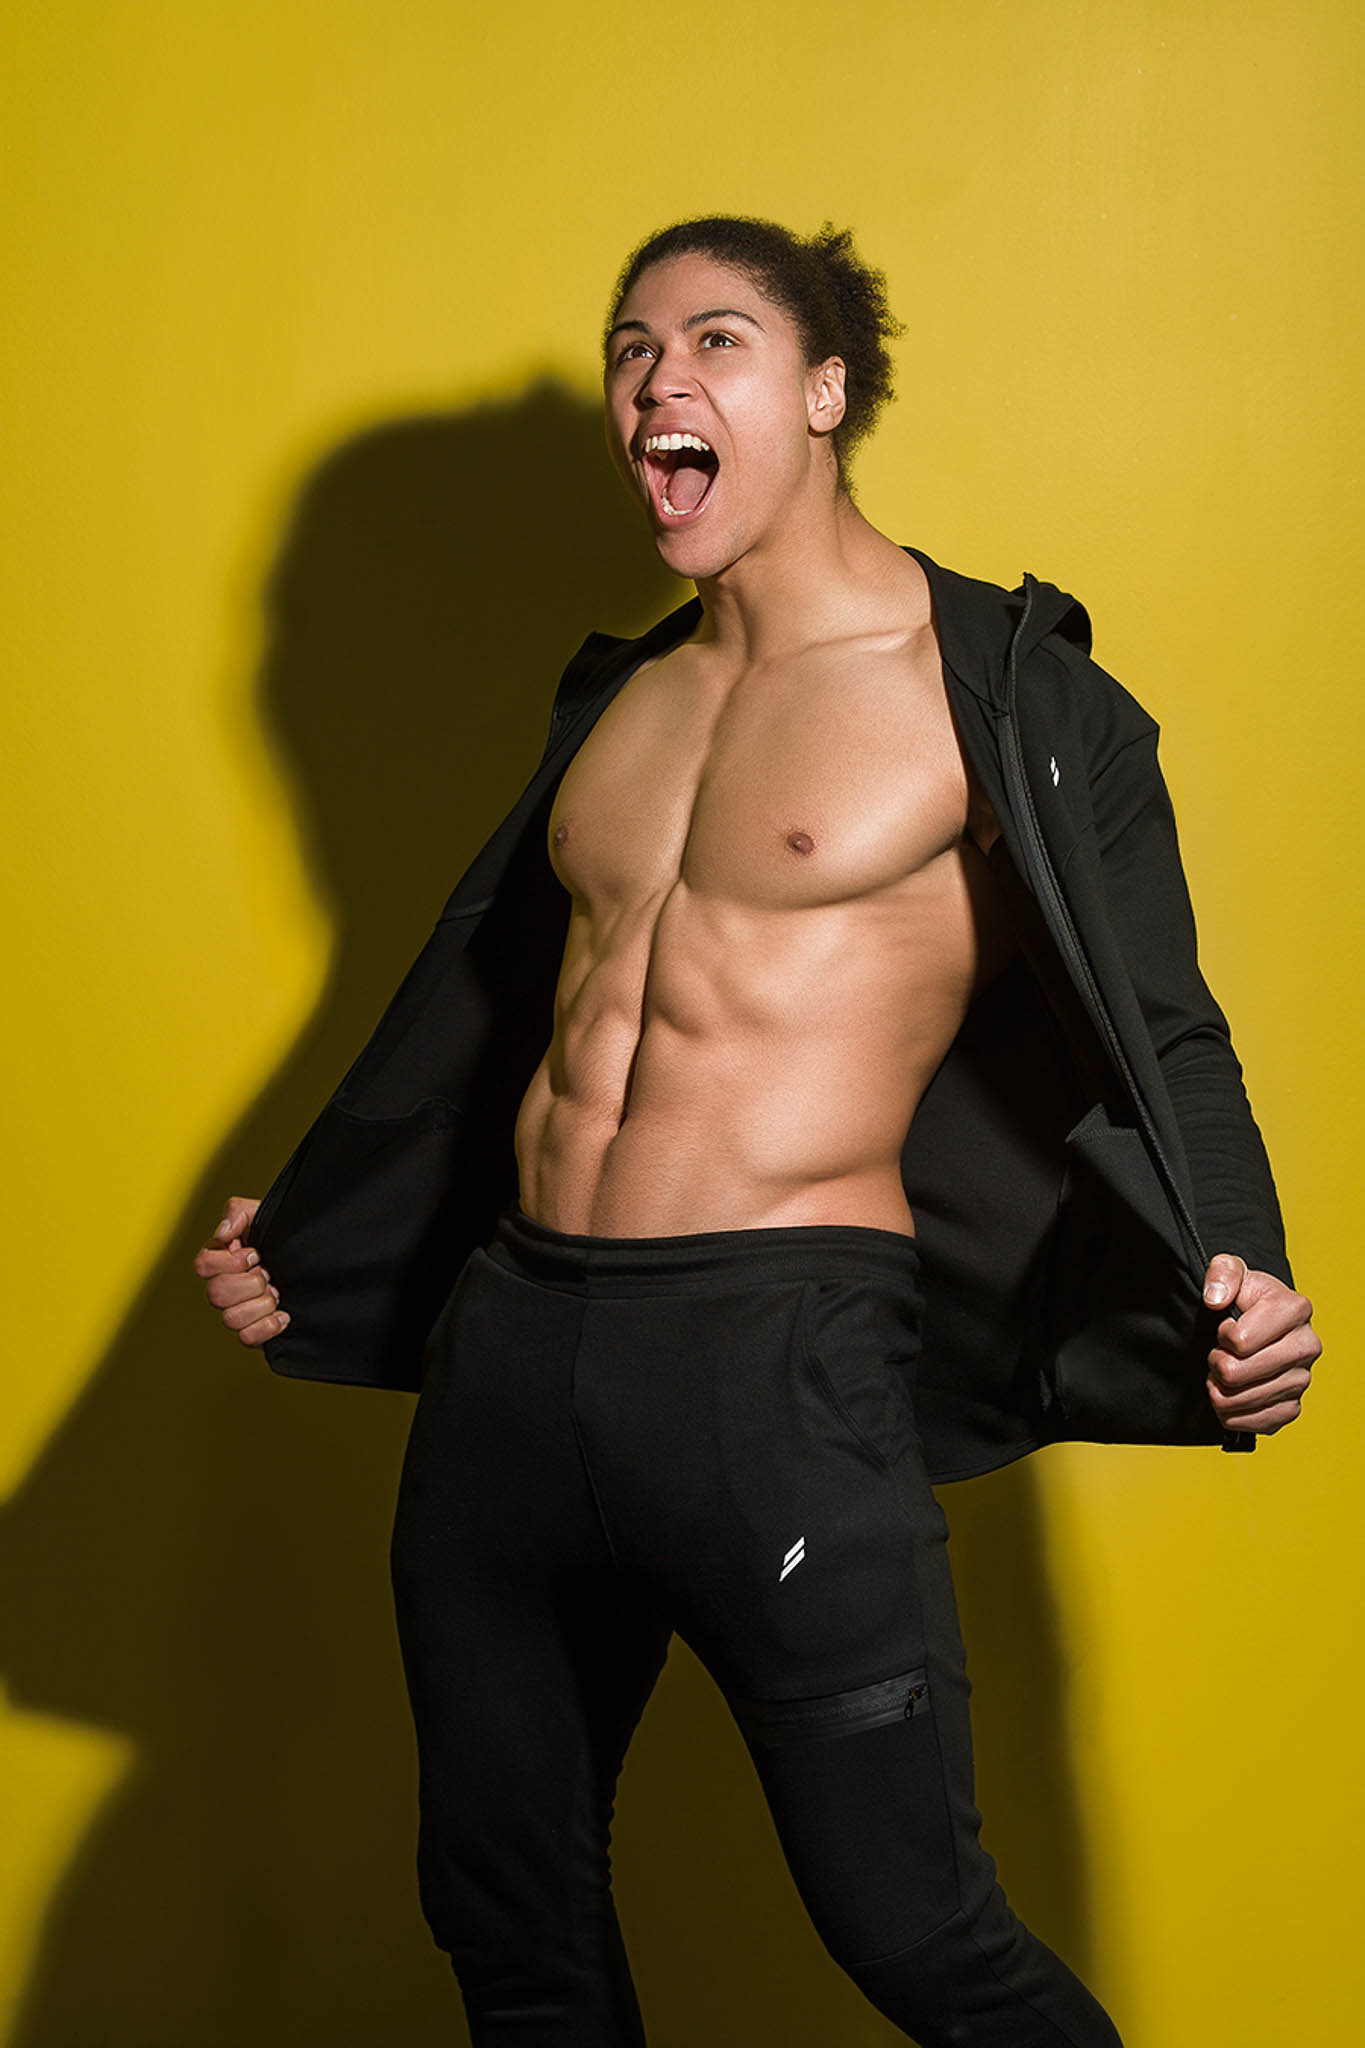 Ossie being animated during his shoot wearing a black zipped Hoody and black pants whilst flexing his abs